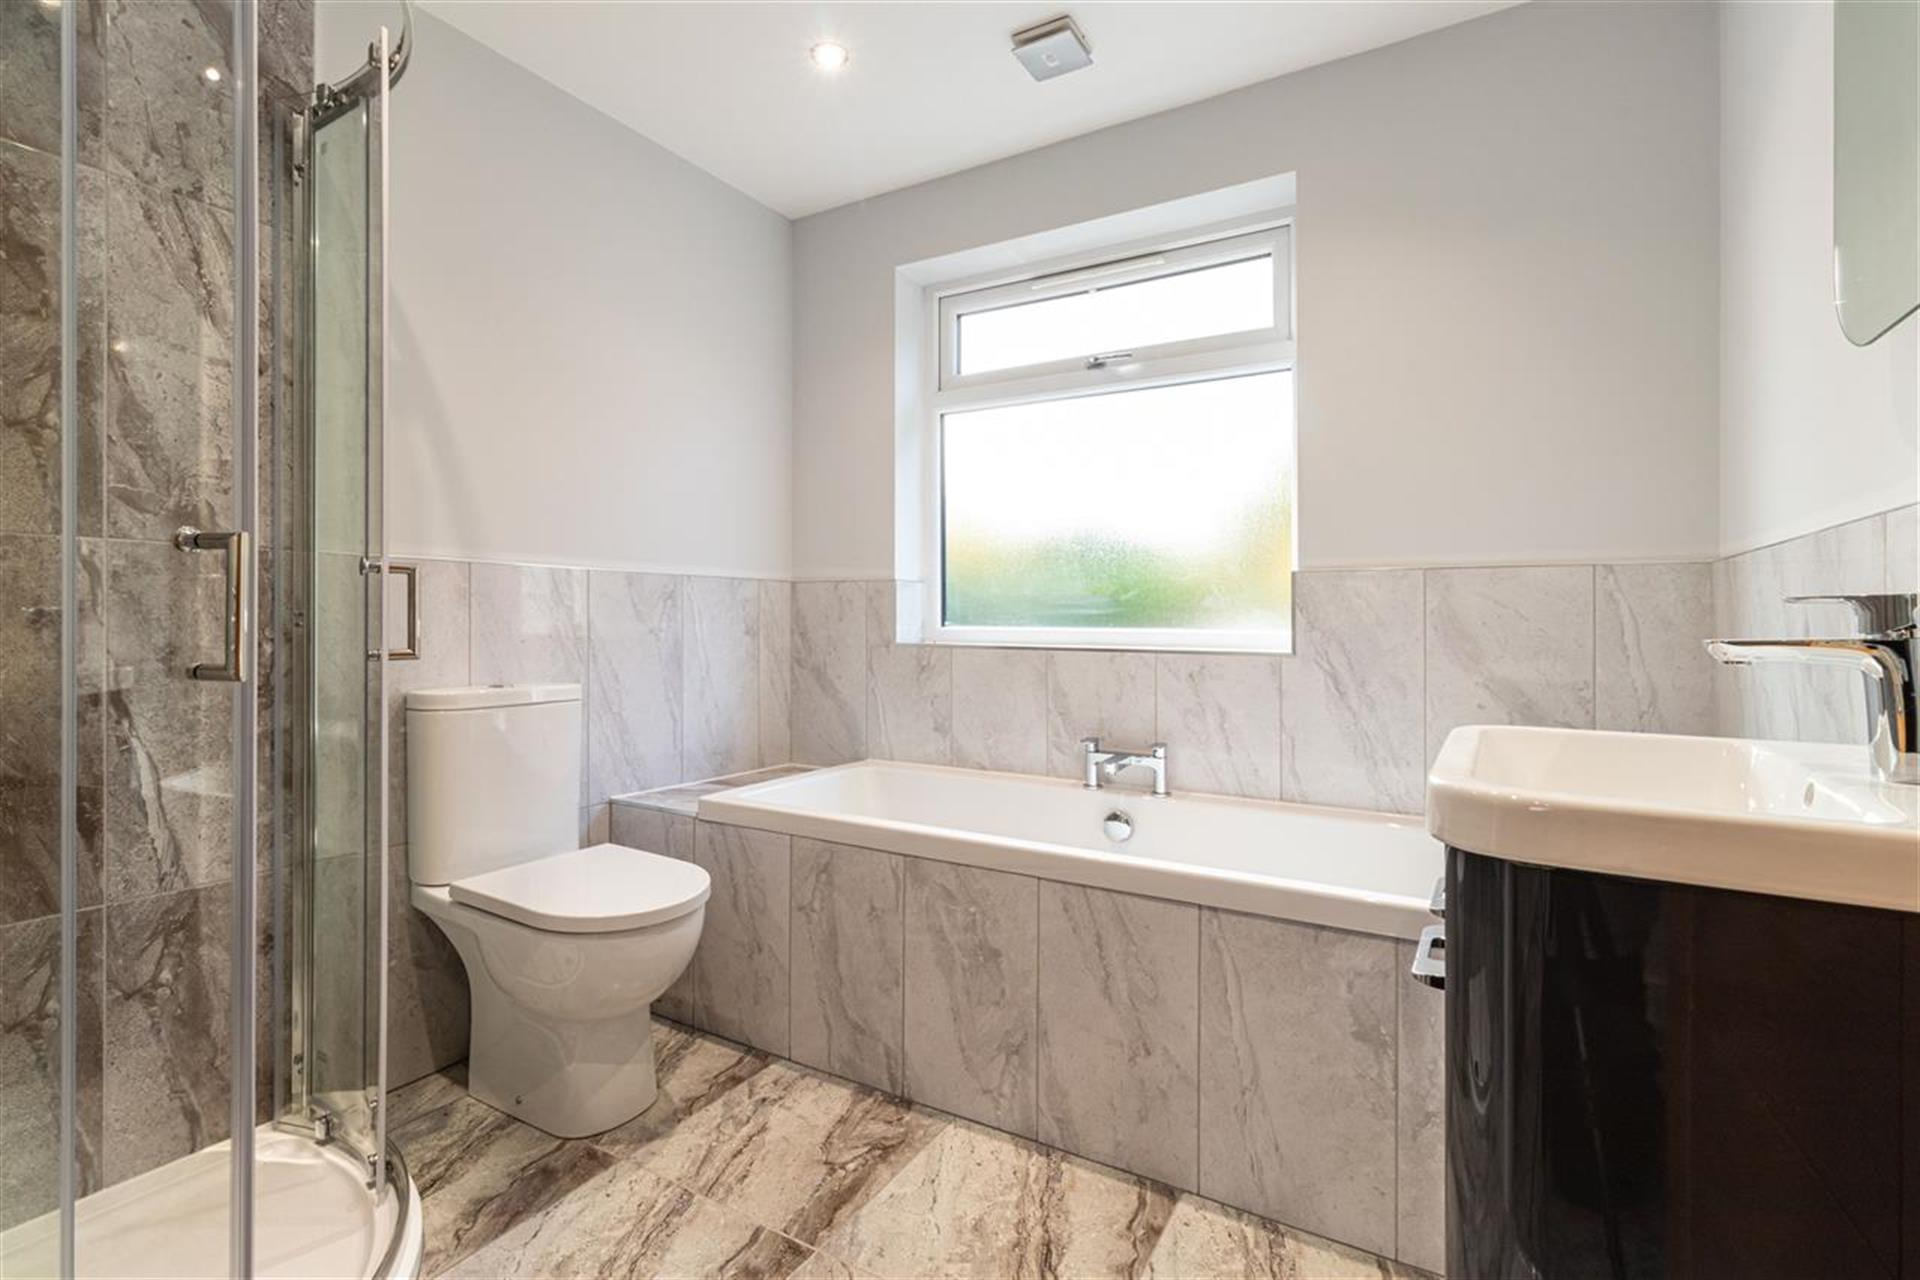 6 Bedroom Detached House For Sale - Family Bathroom